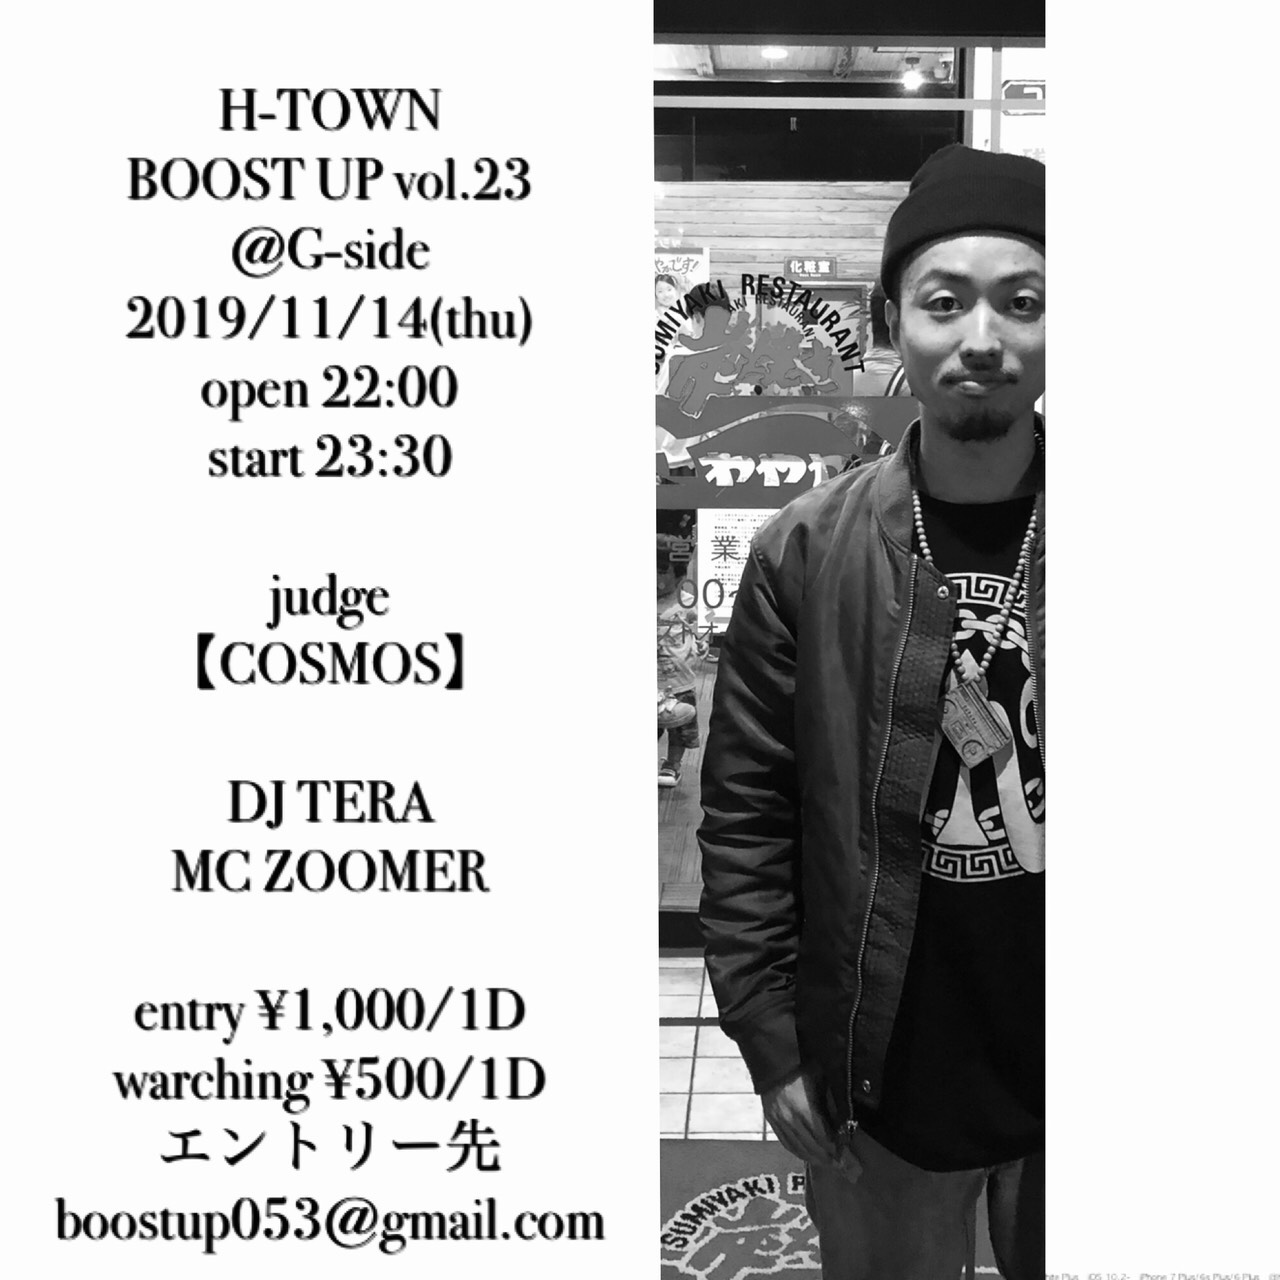 11月14日木曜日 H-TOWN BOOST UP vol.23